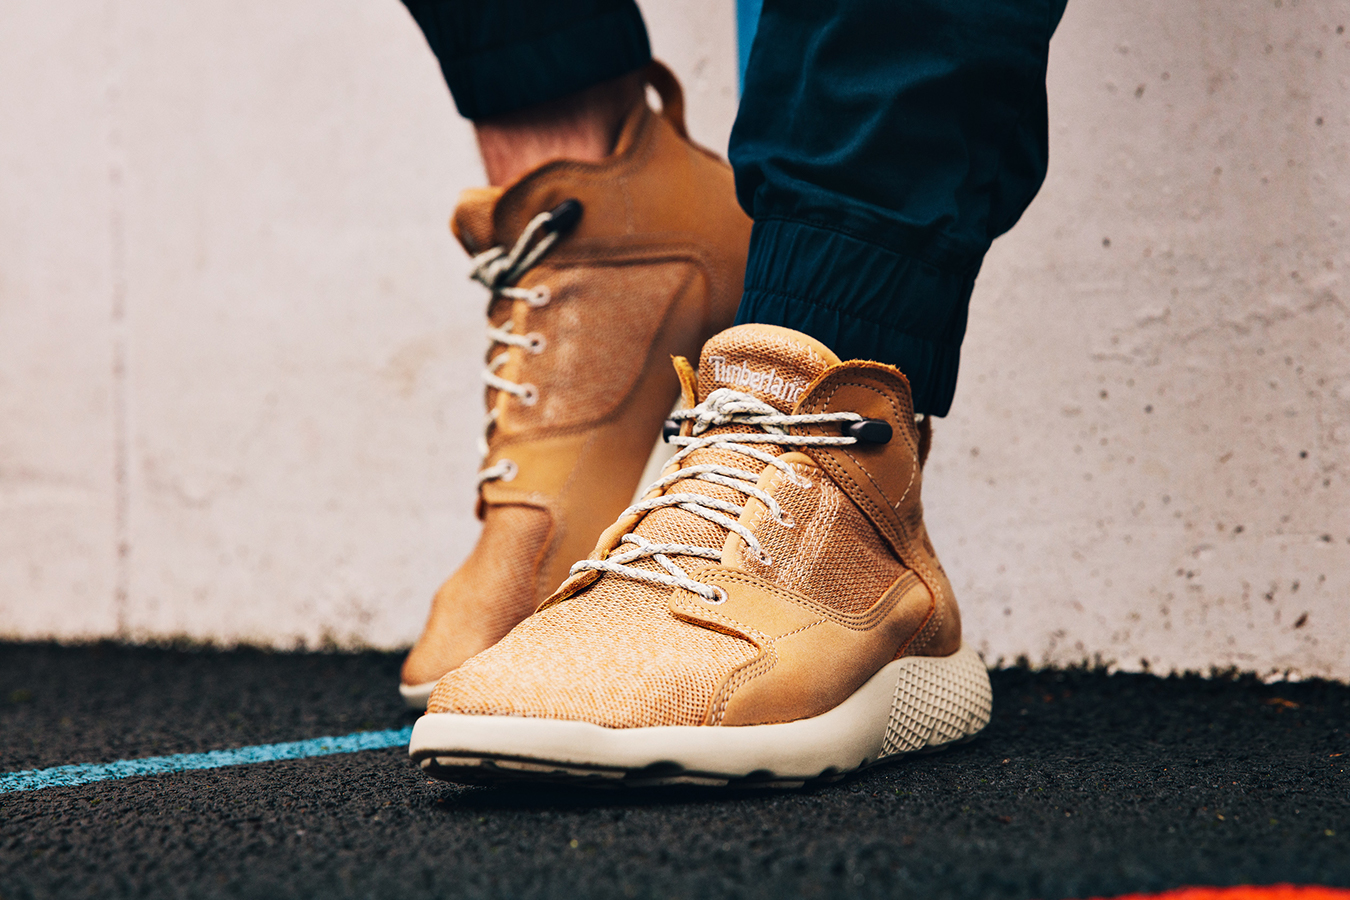 timberland flyroam chukka boot 2017 spring aerocore collection - 3725074